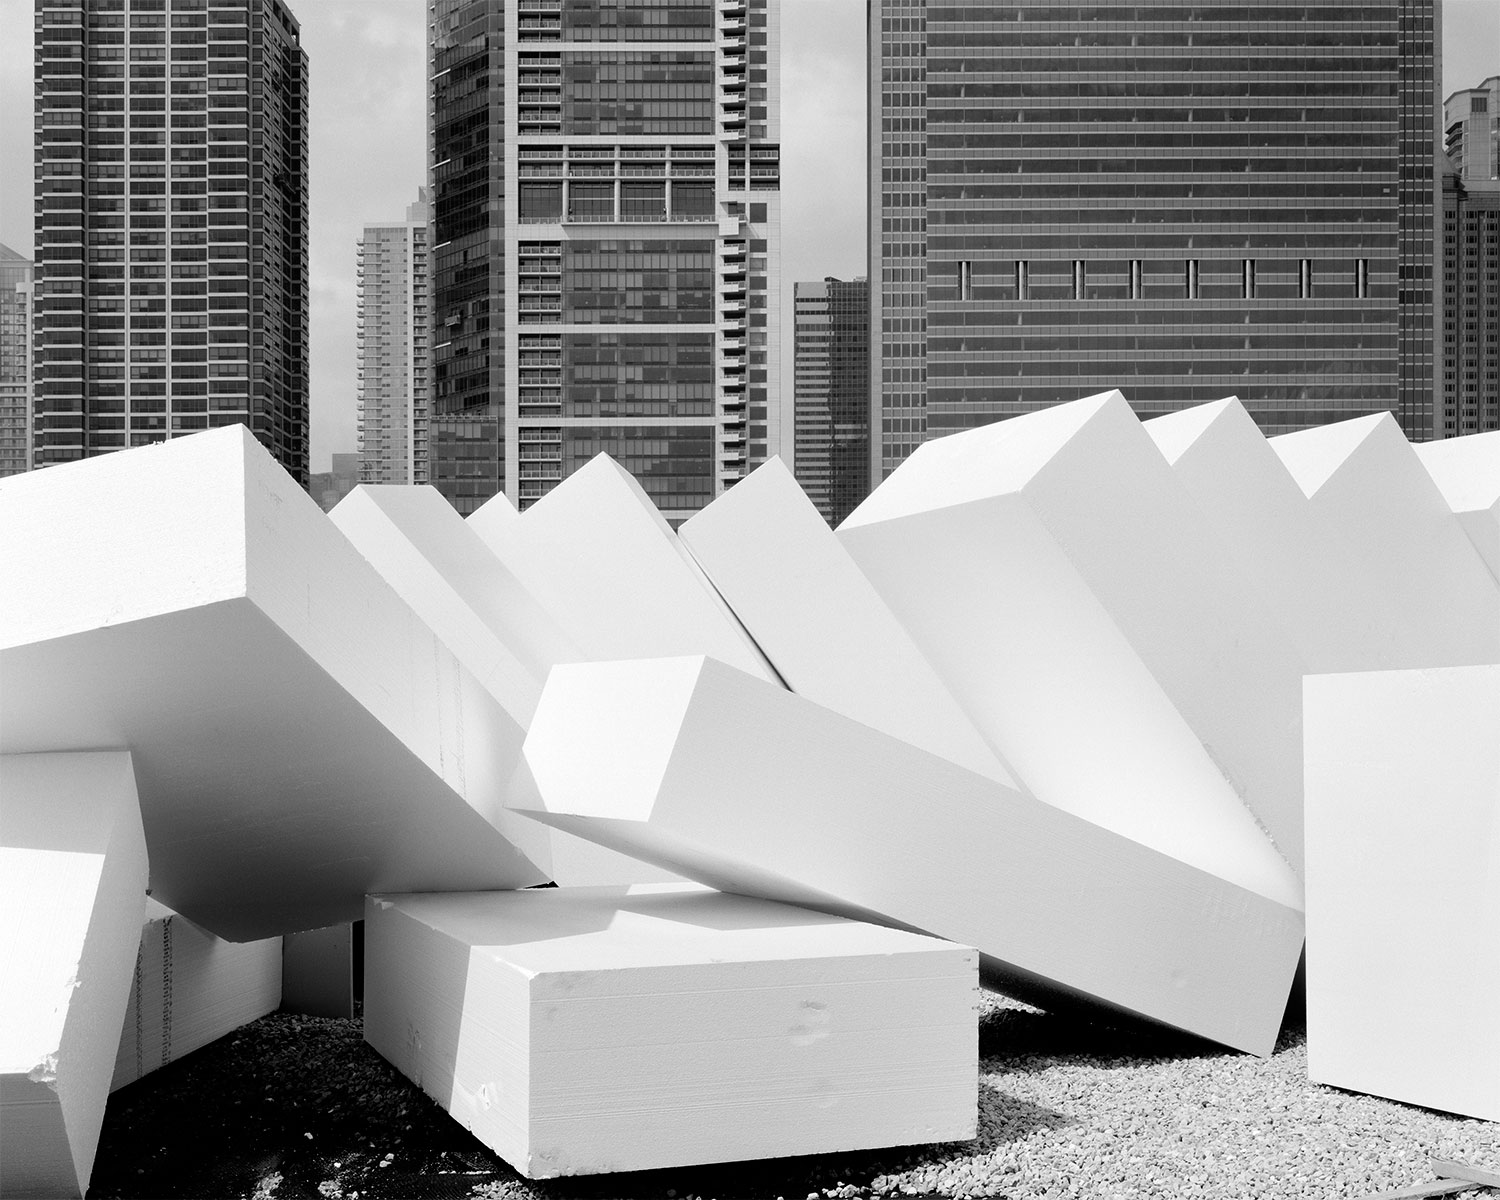 These images reveal the underlying structure of Chicago's Maggie Daley Park as well as other public parks as detail studies.